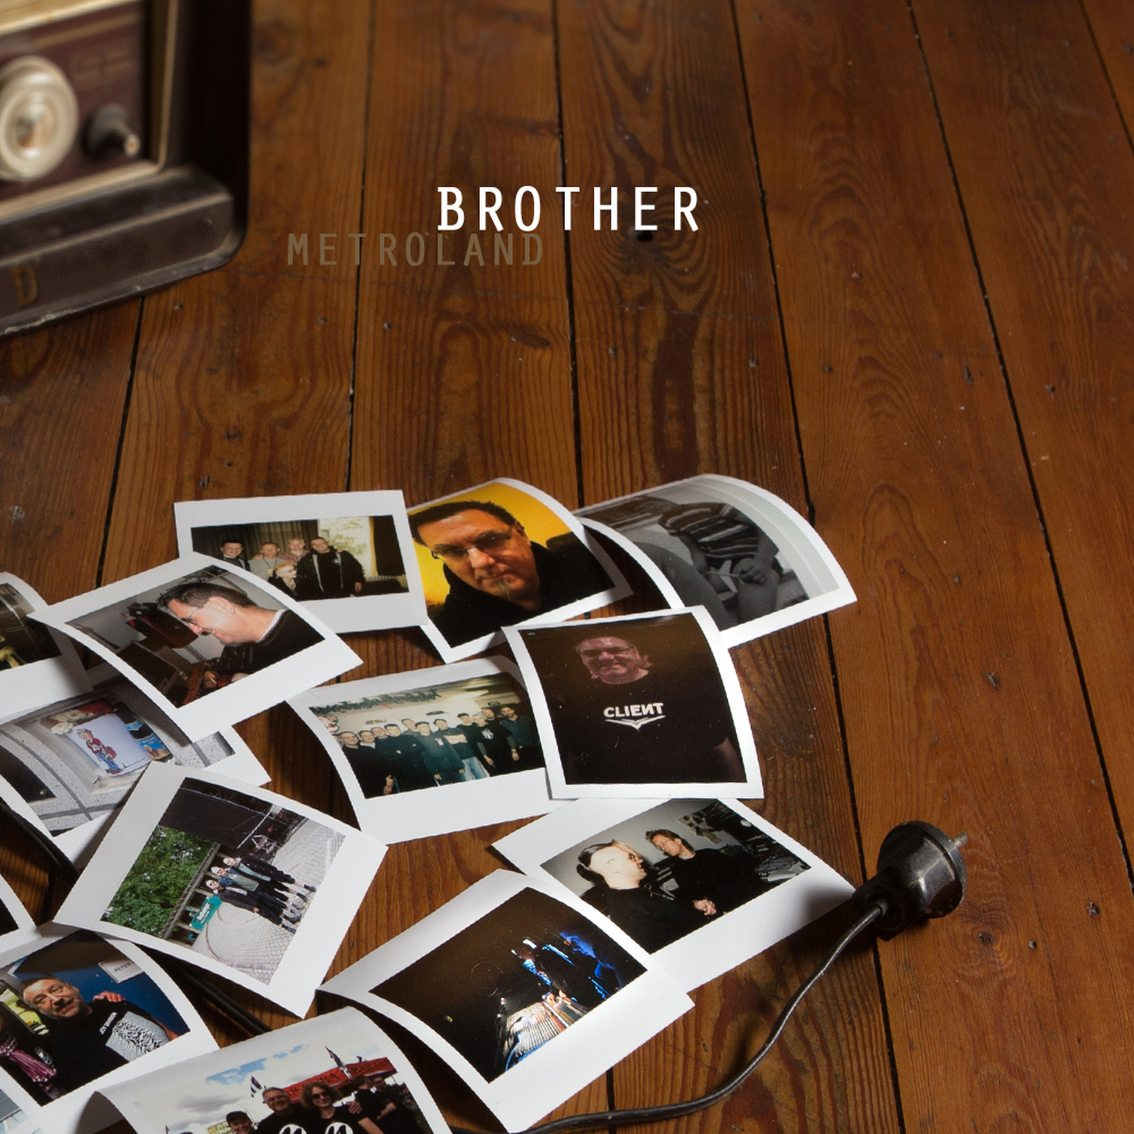 Metroland to officially release'Brother' single tomorrow - 1 year after Louis Zachert passed away